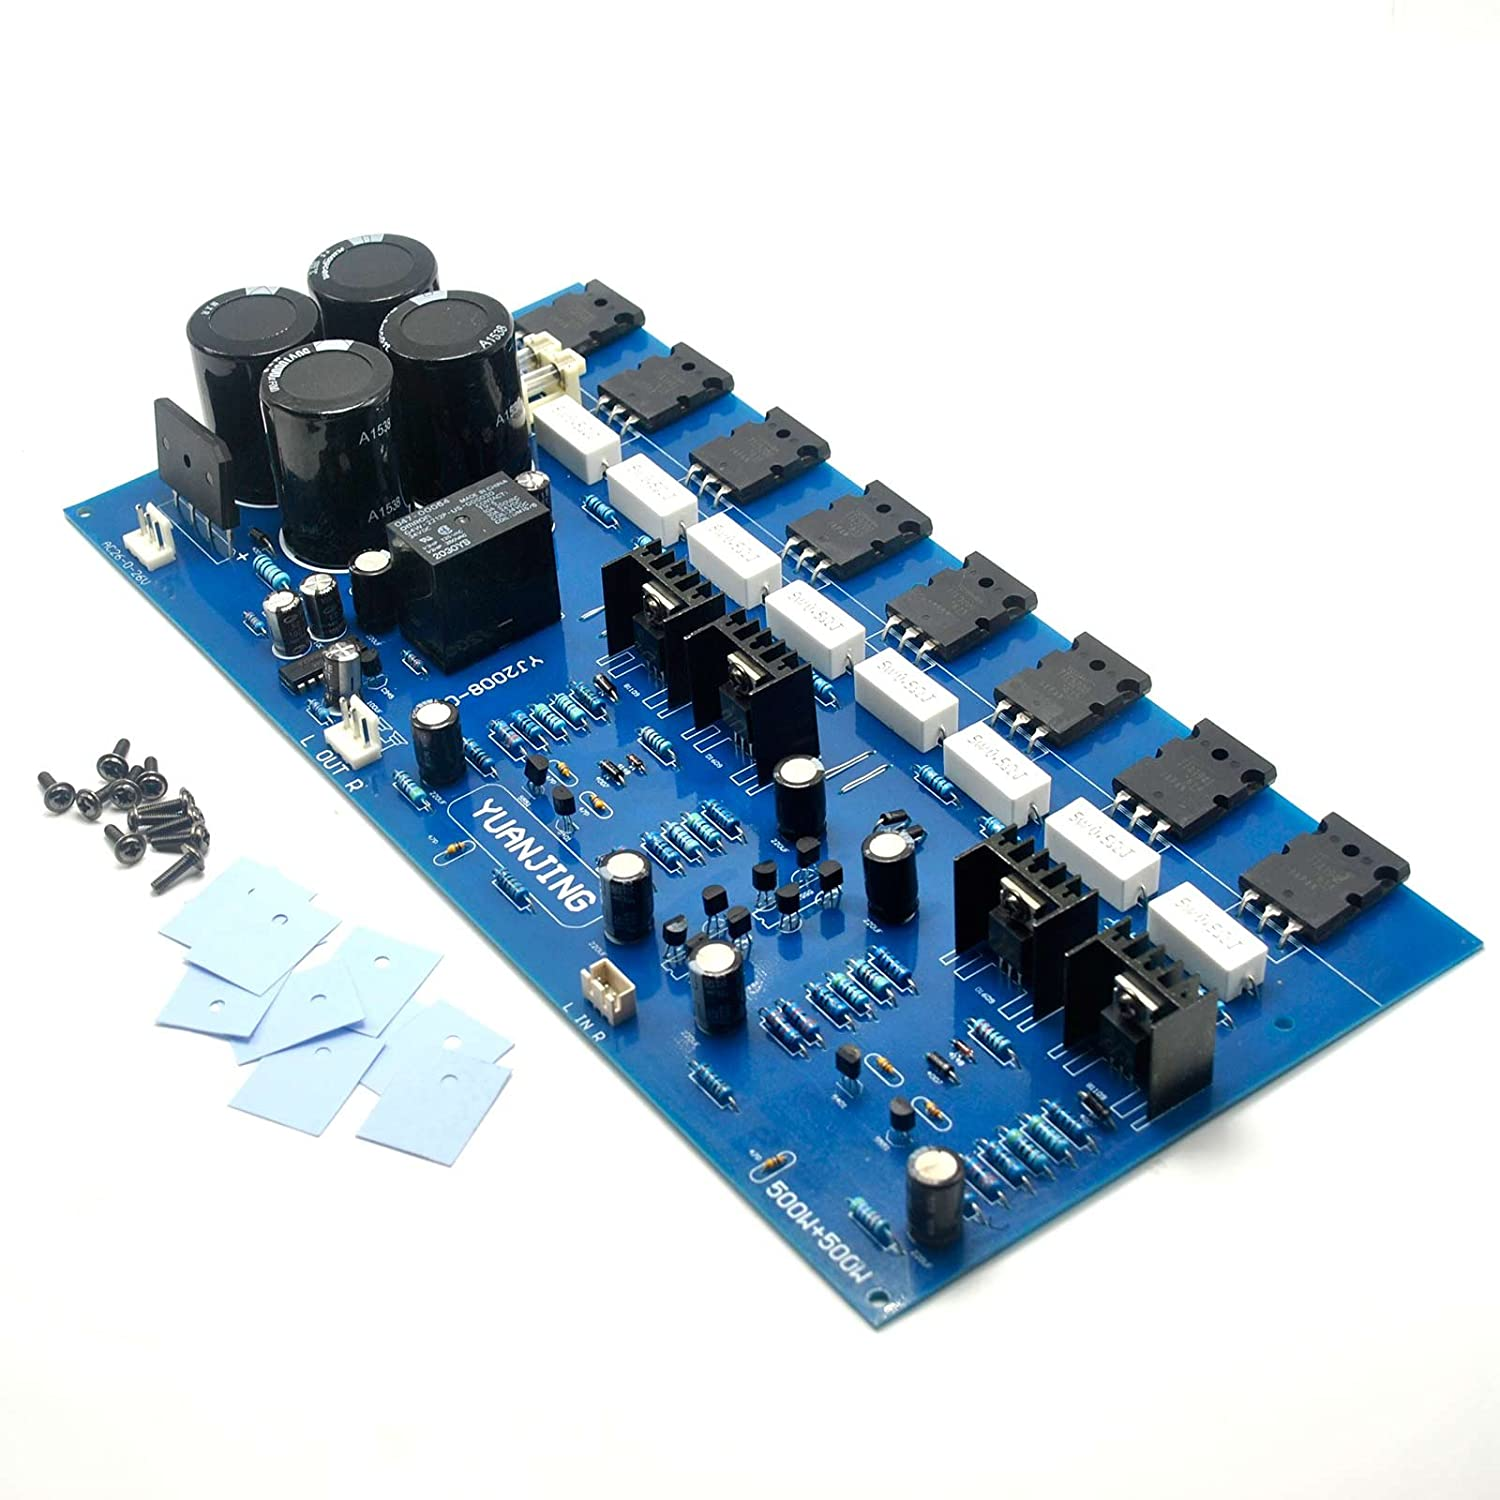 2sc5200 2sa1943 High Power Amplifier Board 400w Audio Schema And Layout Musical Instruments